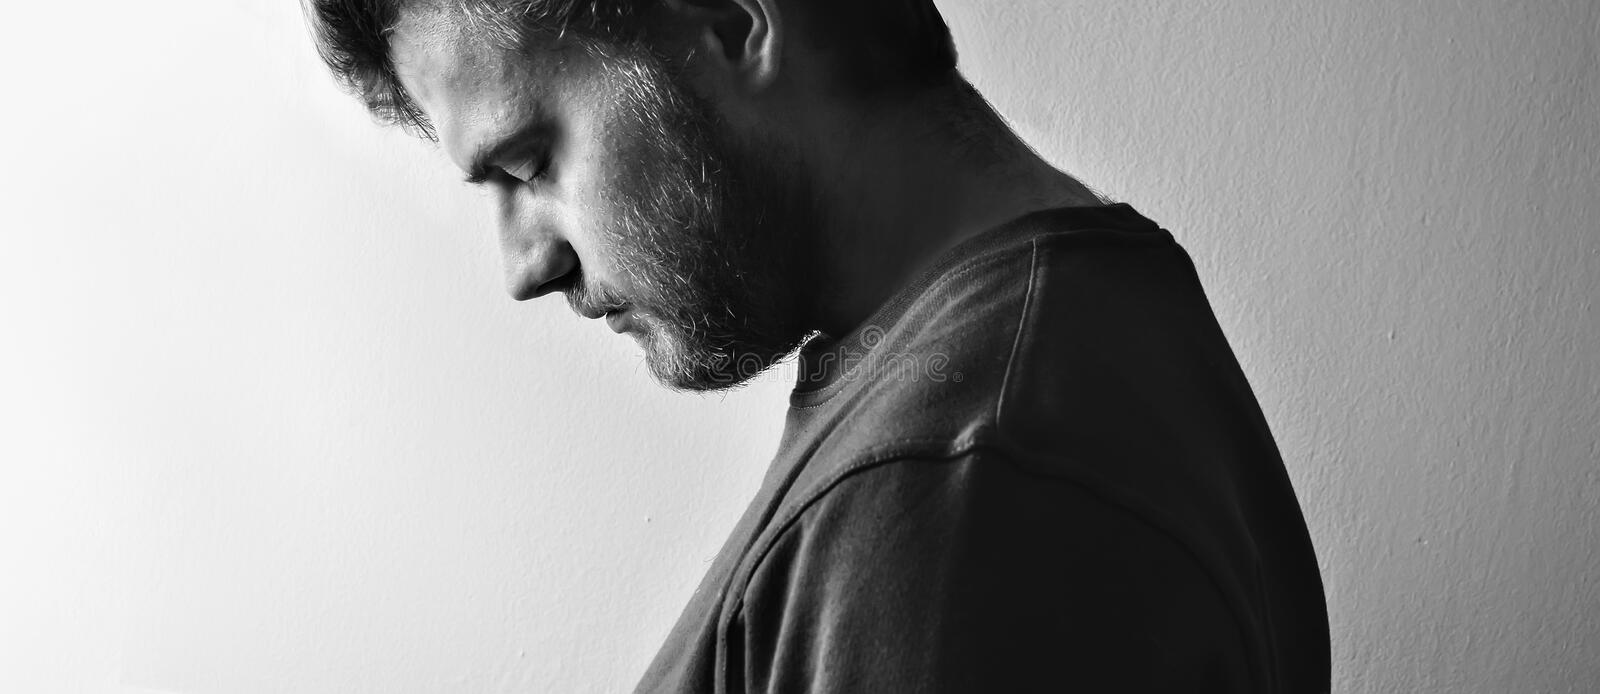 Dark guy, man profile, tilted his head down in depression on a white background isolated, black and white stock photos